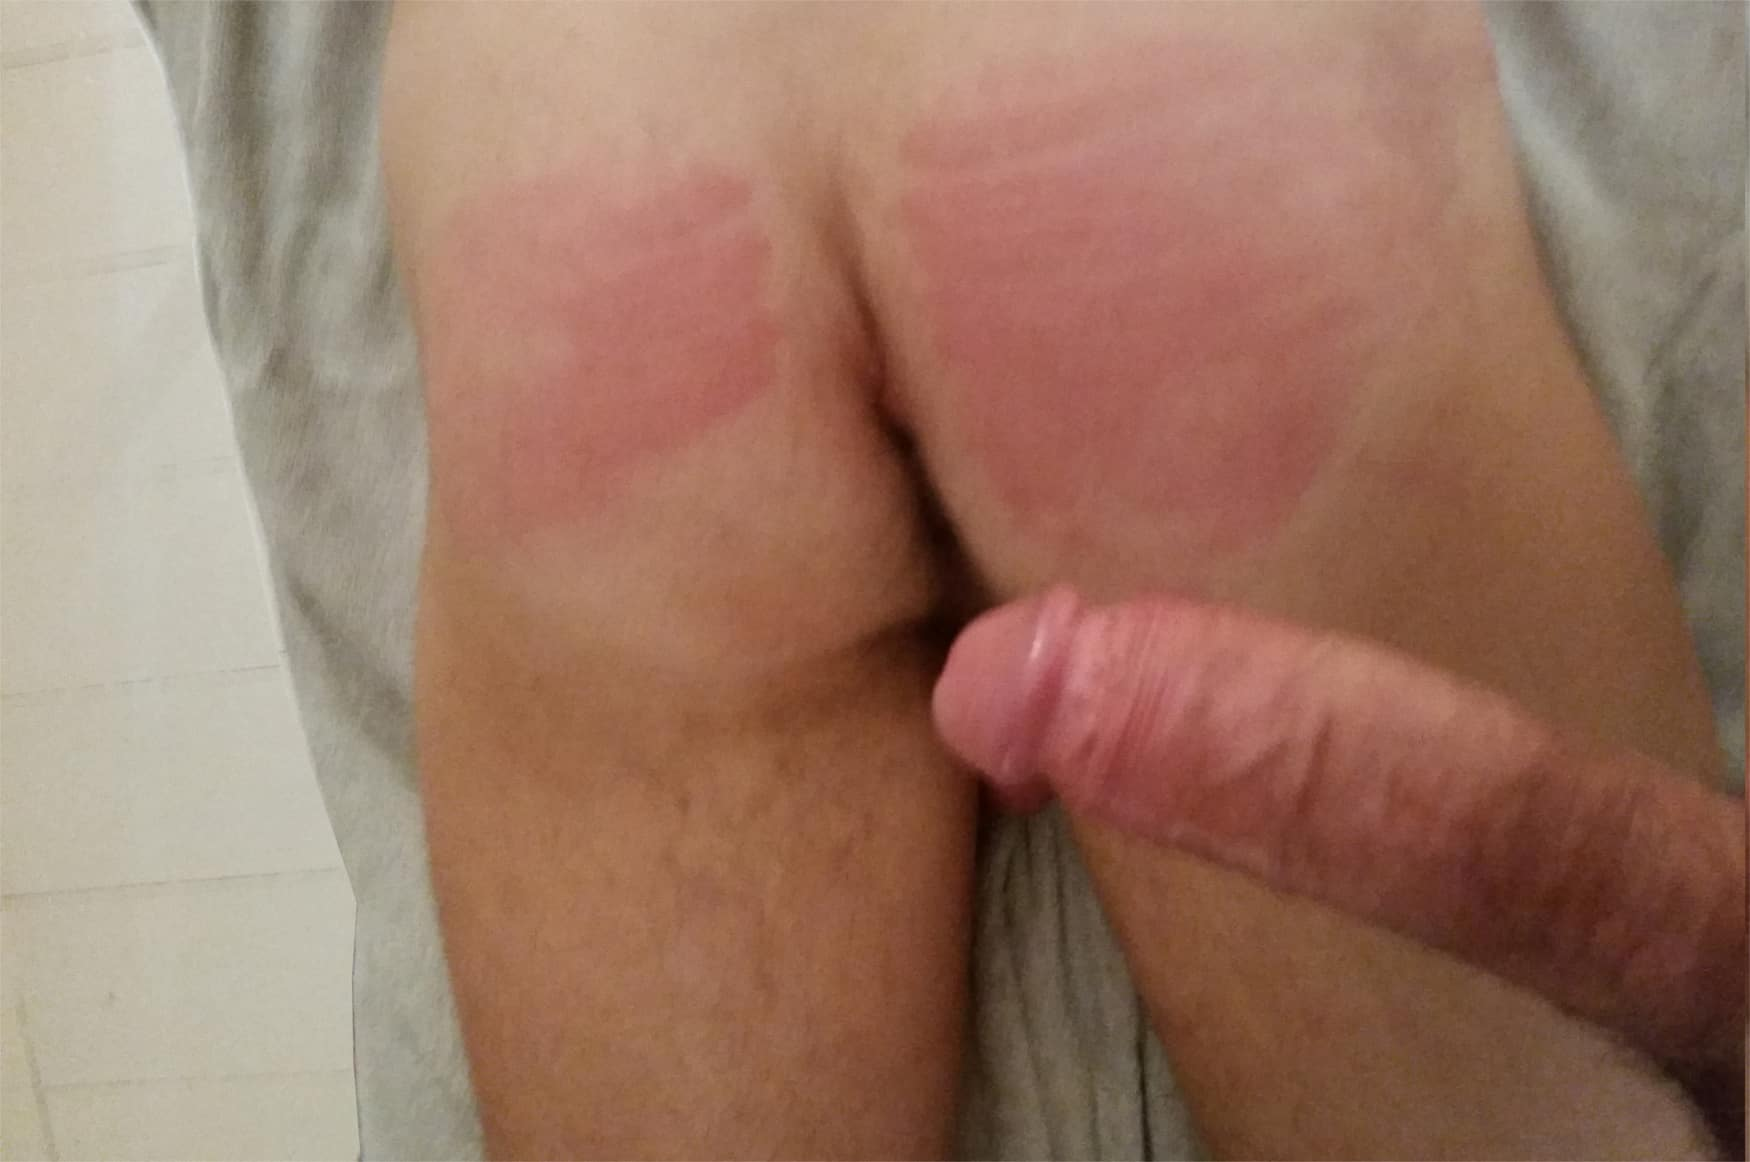 caned cropped